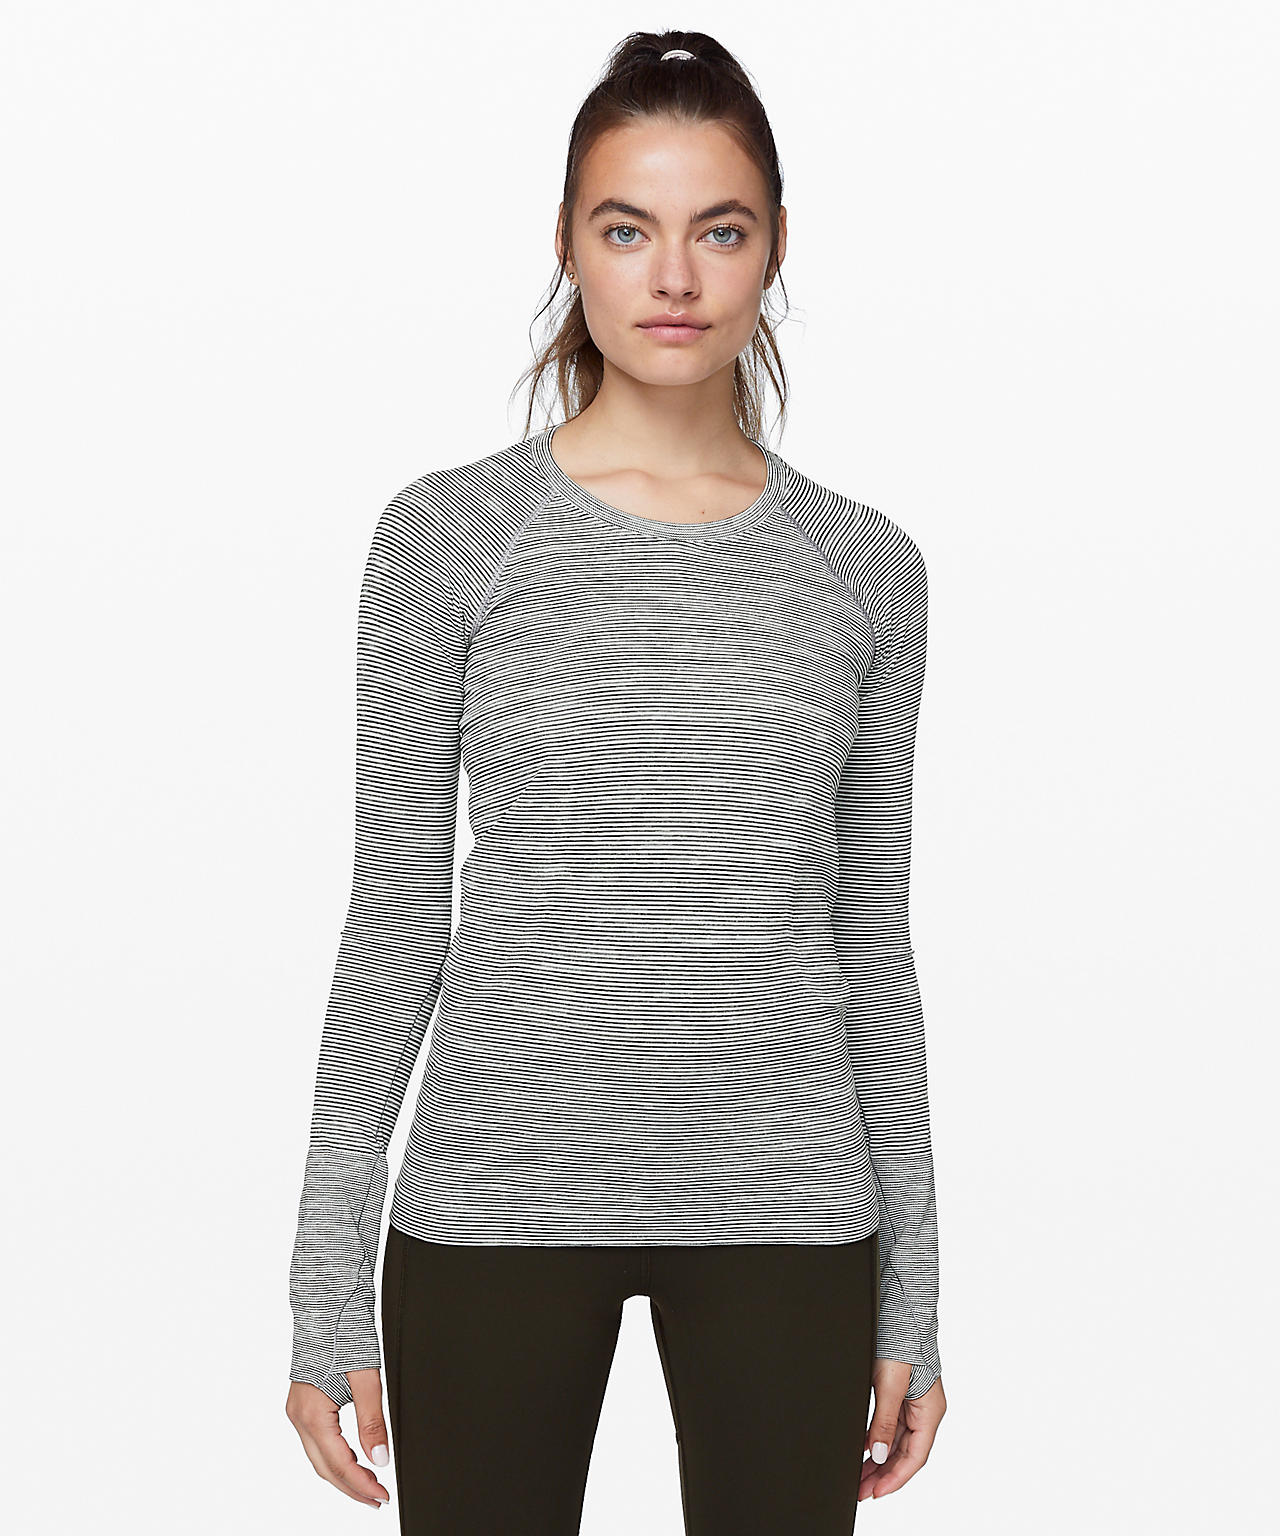 Swiftly Speed Long Sleeve, Lululemon